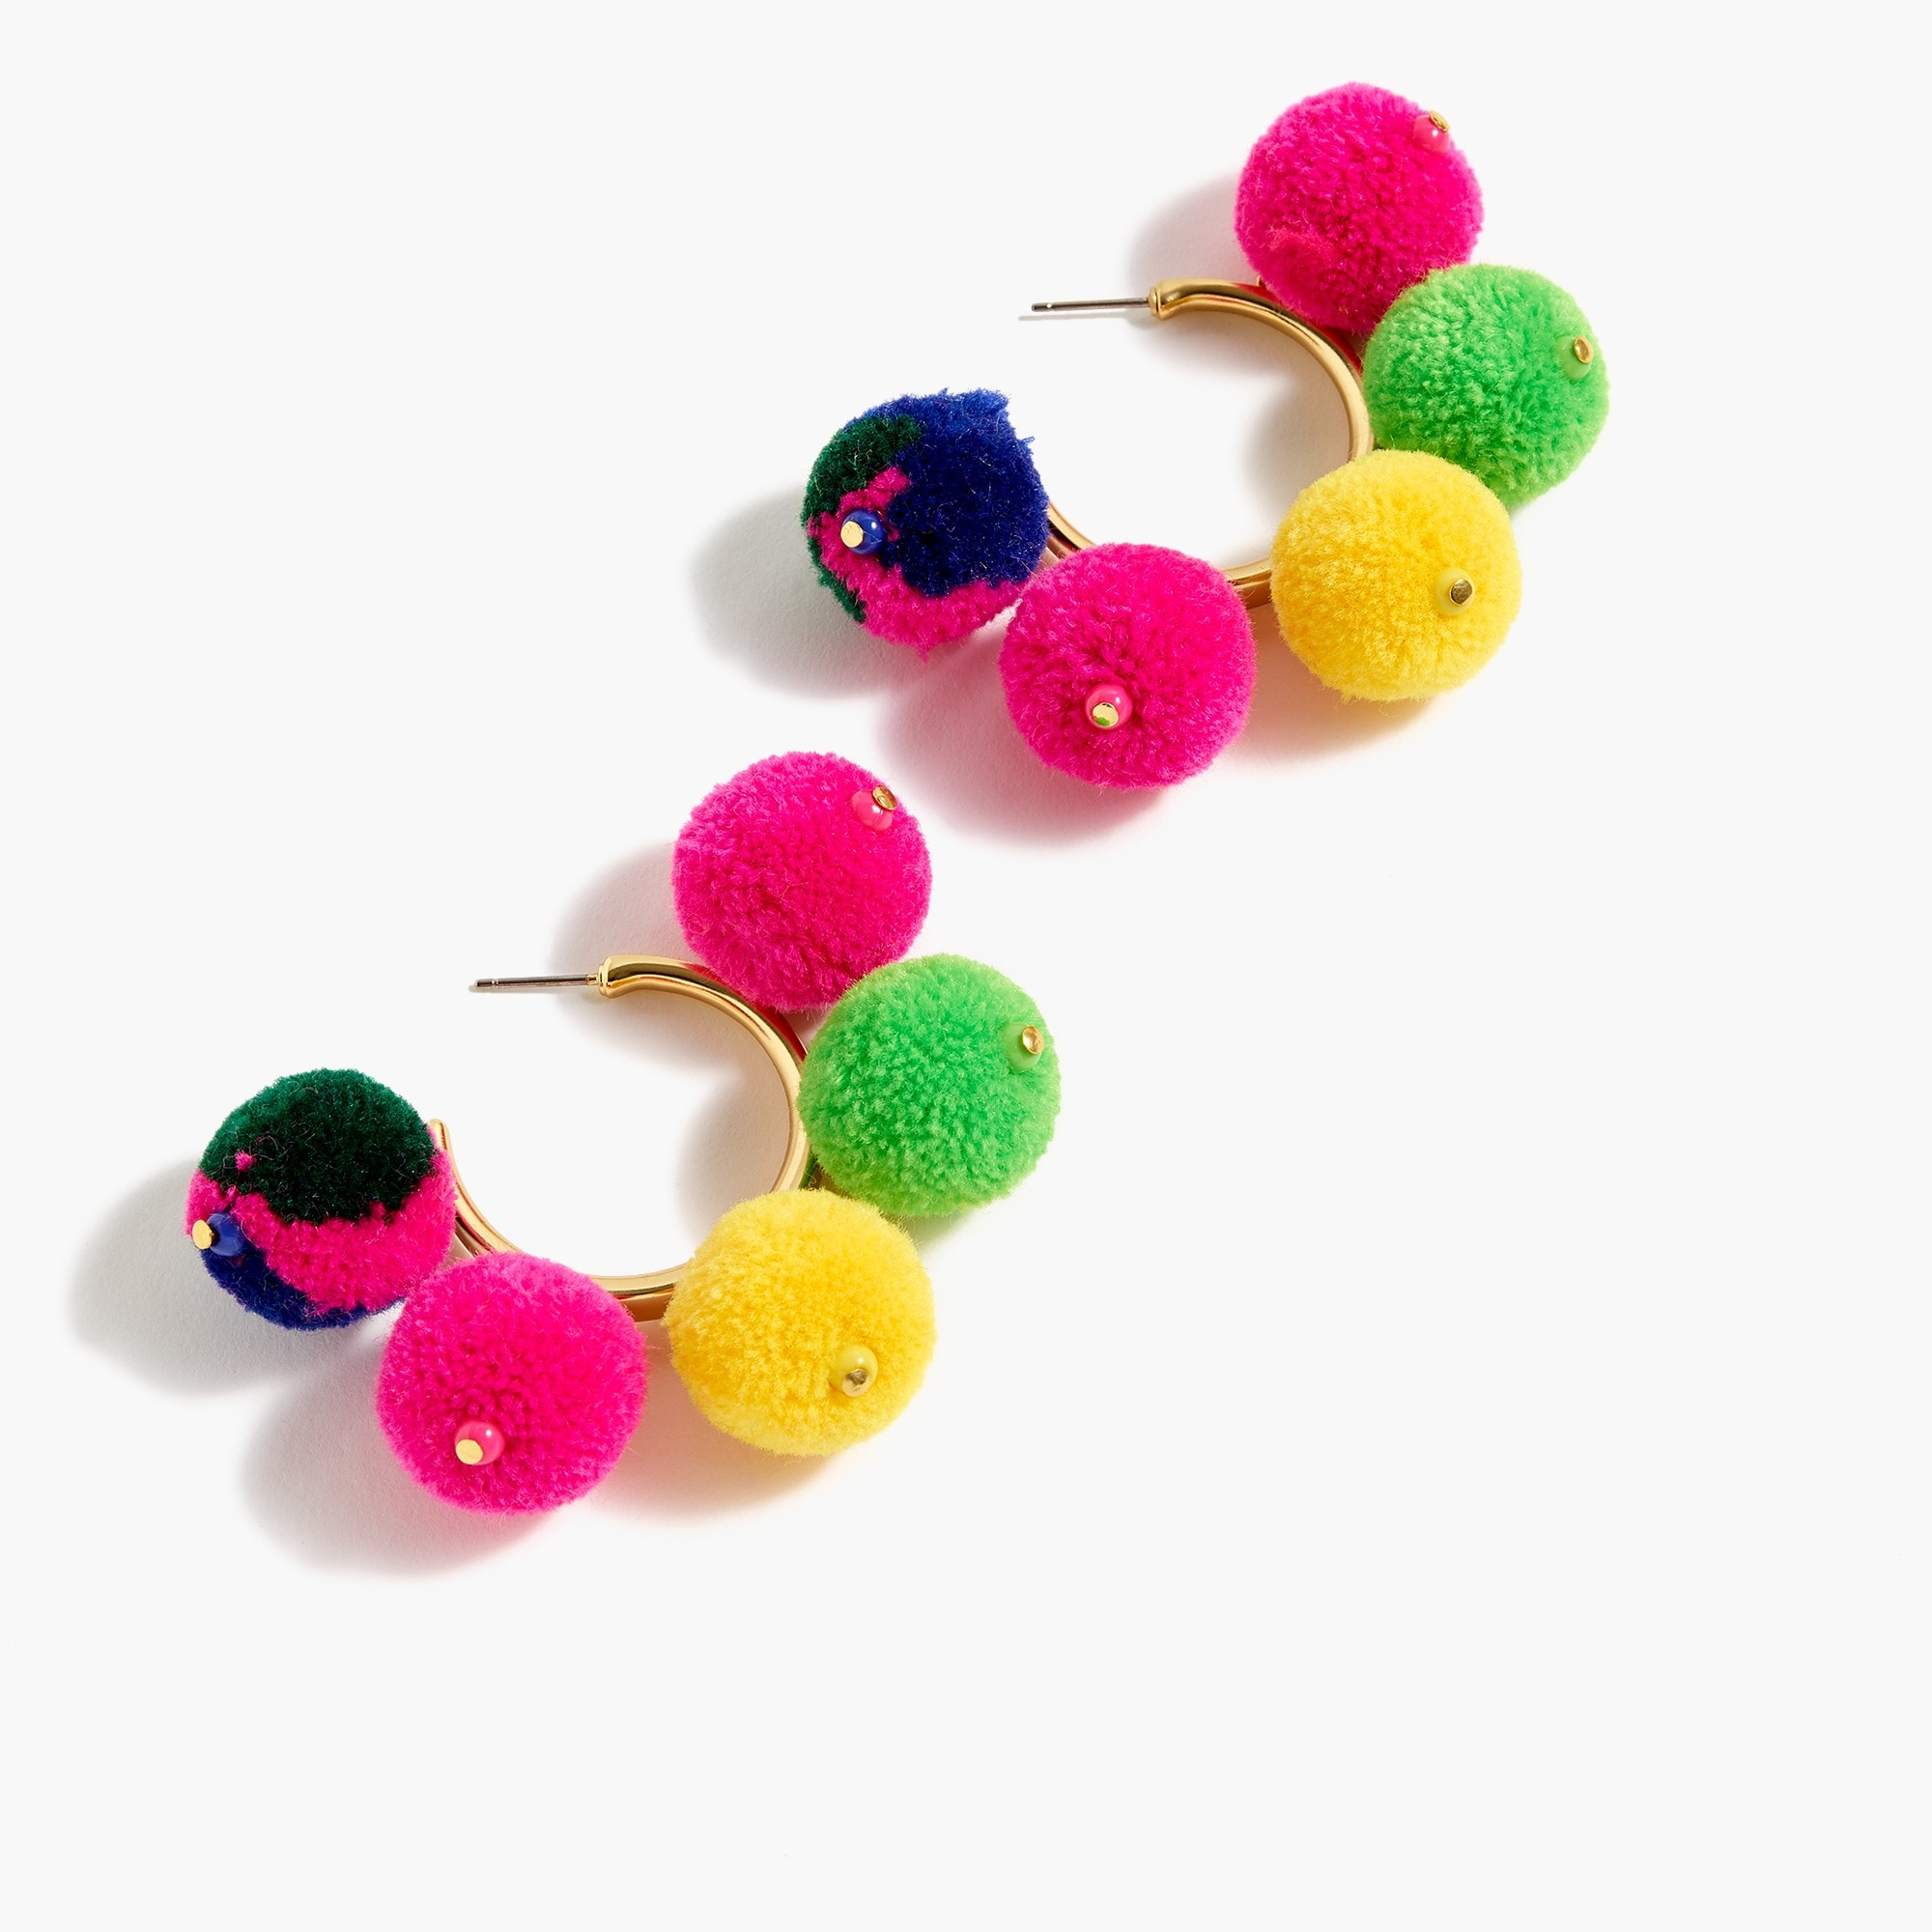 Pom-pom hoop earrings